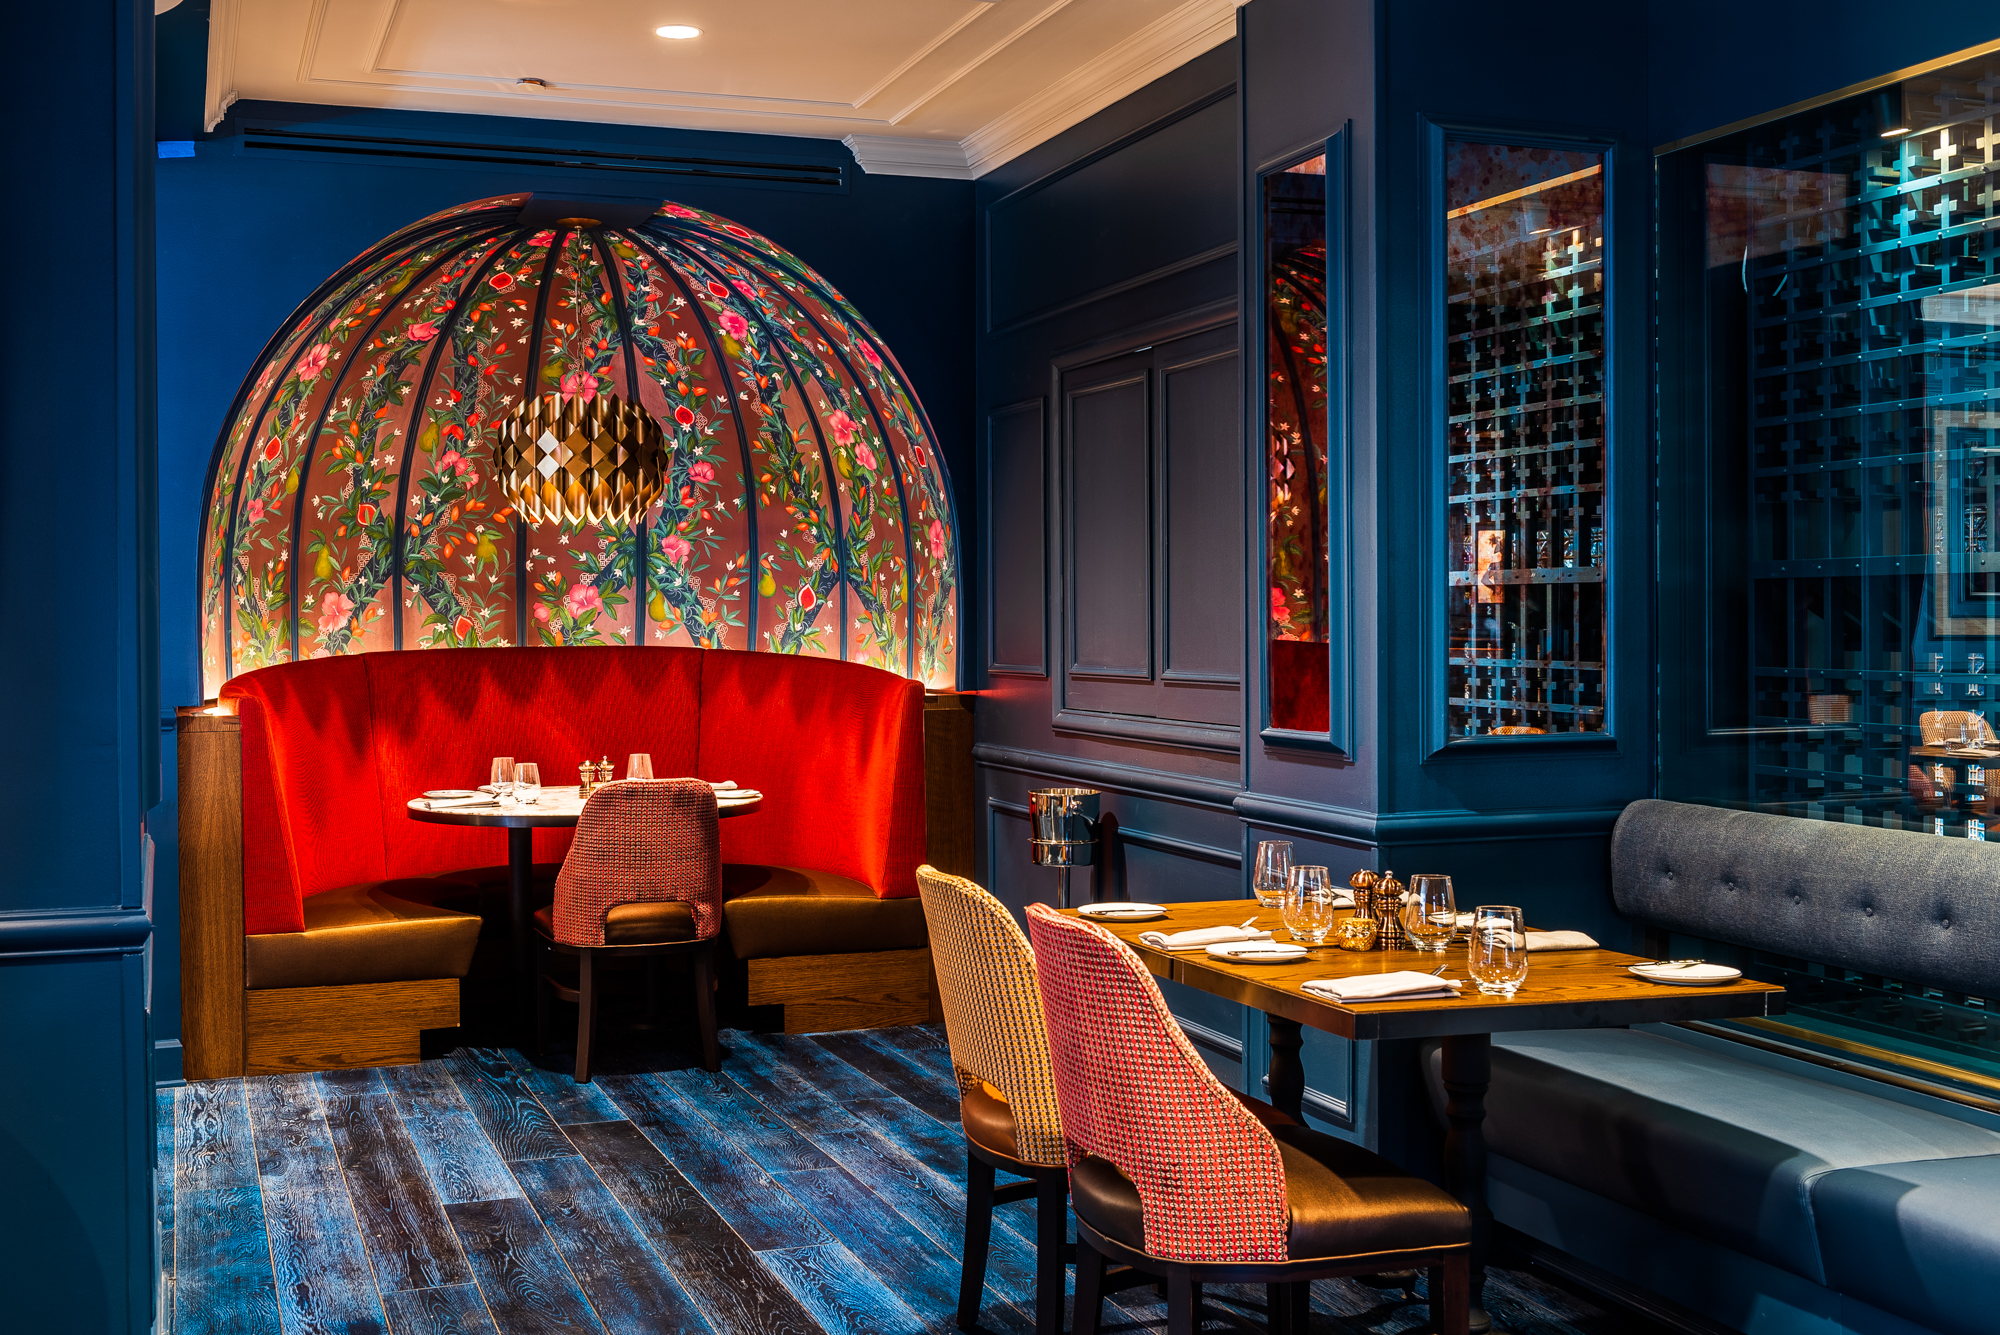 Brasserie Liberté Gives a Fusty Georgetown Steakhouse a Revolutionary Redesign